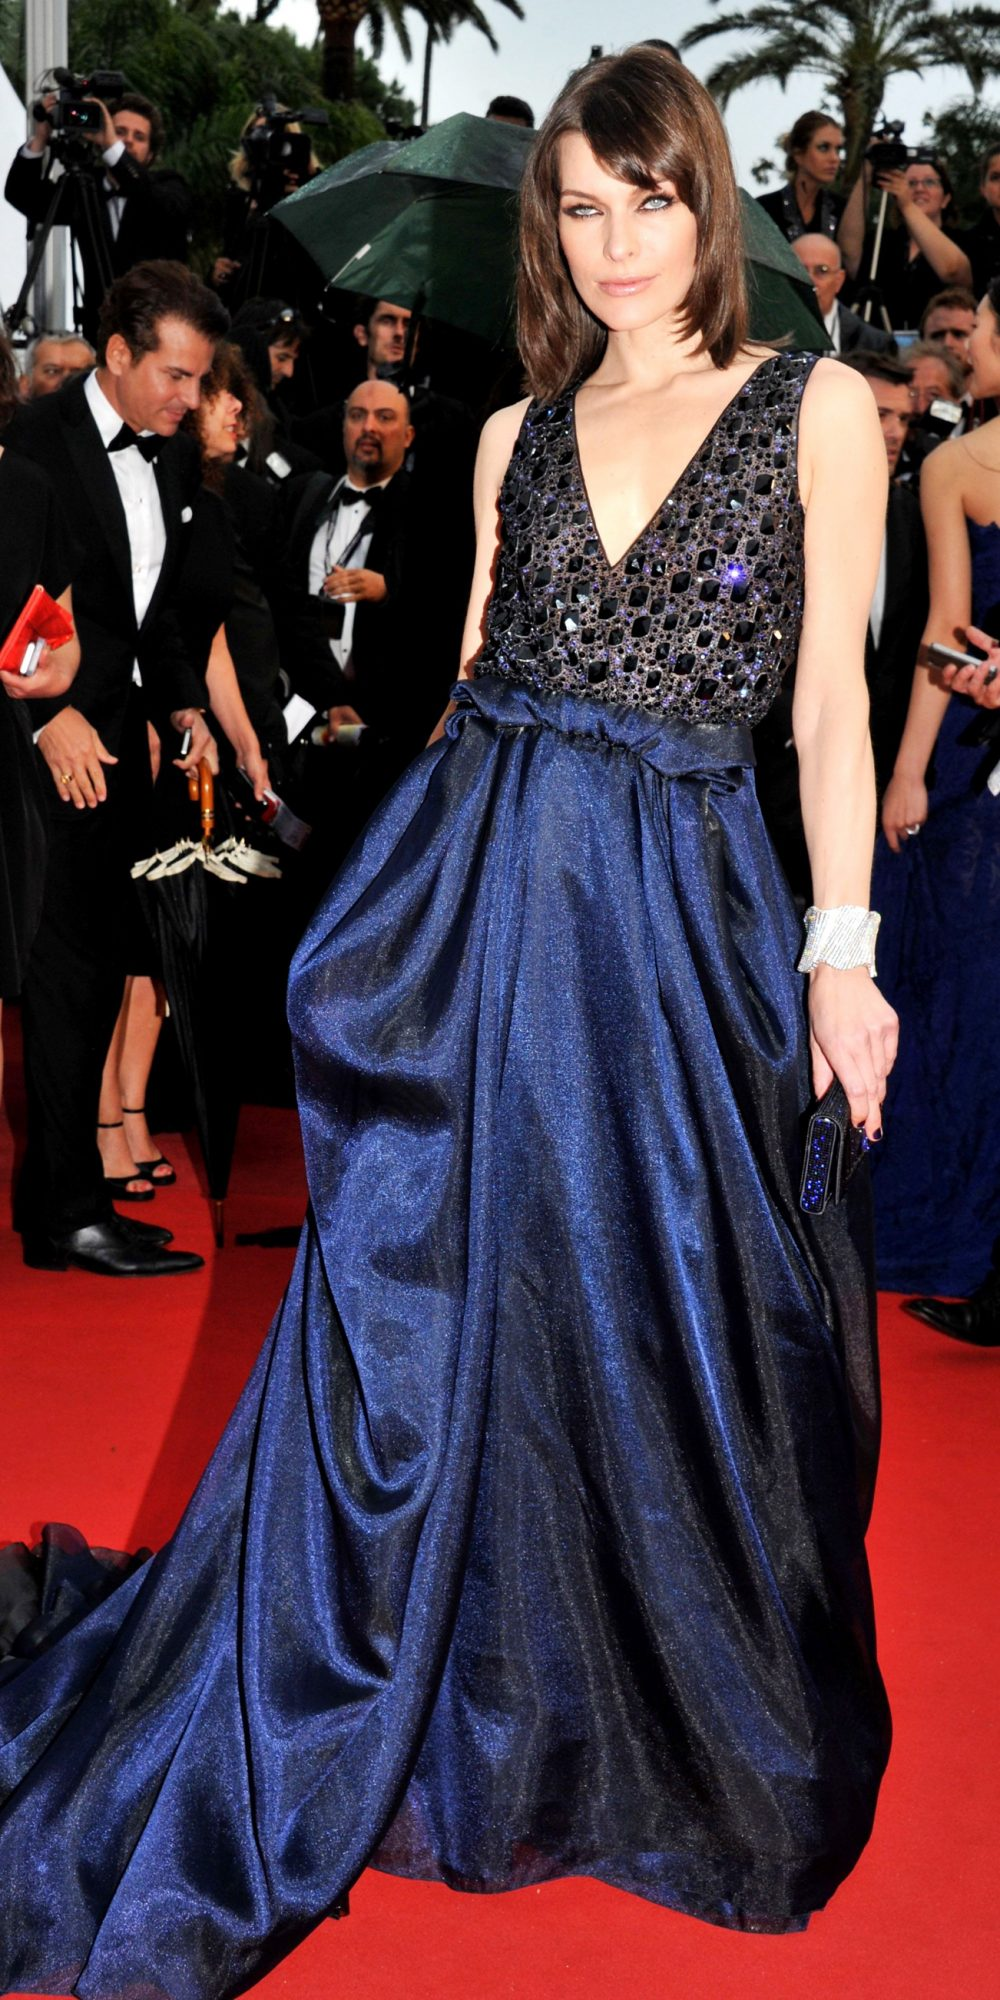 'All Is Lost' film premiere, 66th Cannes Film Festival, France - 22 May 2013